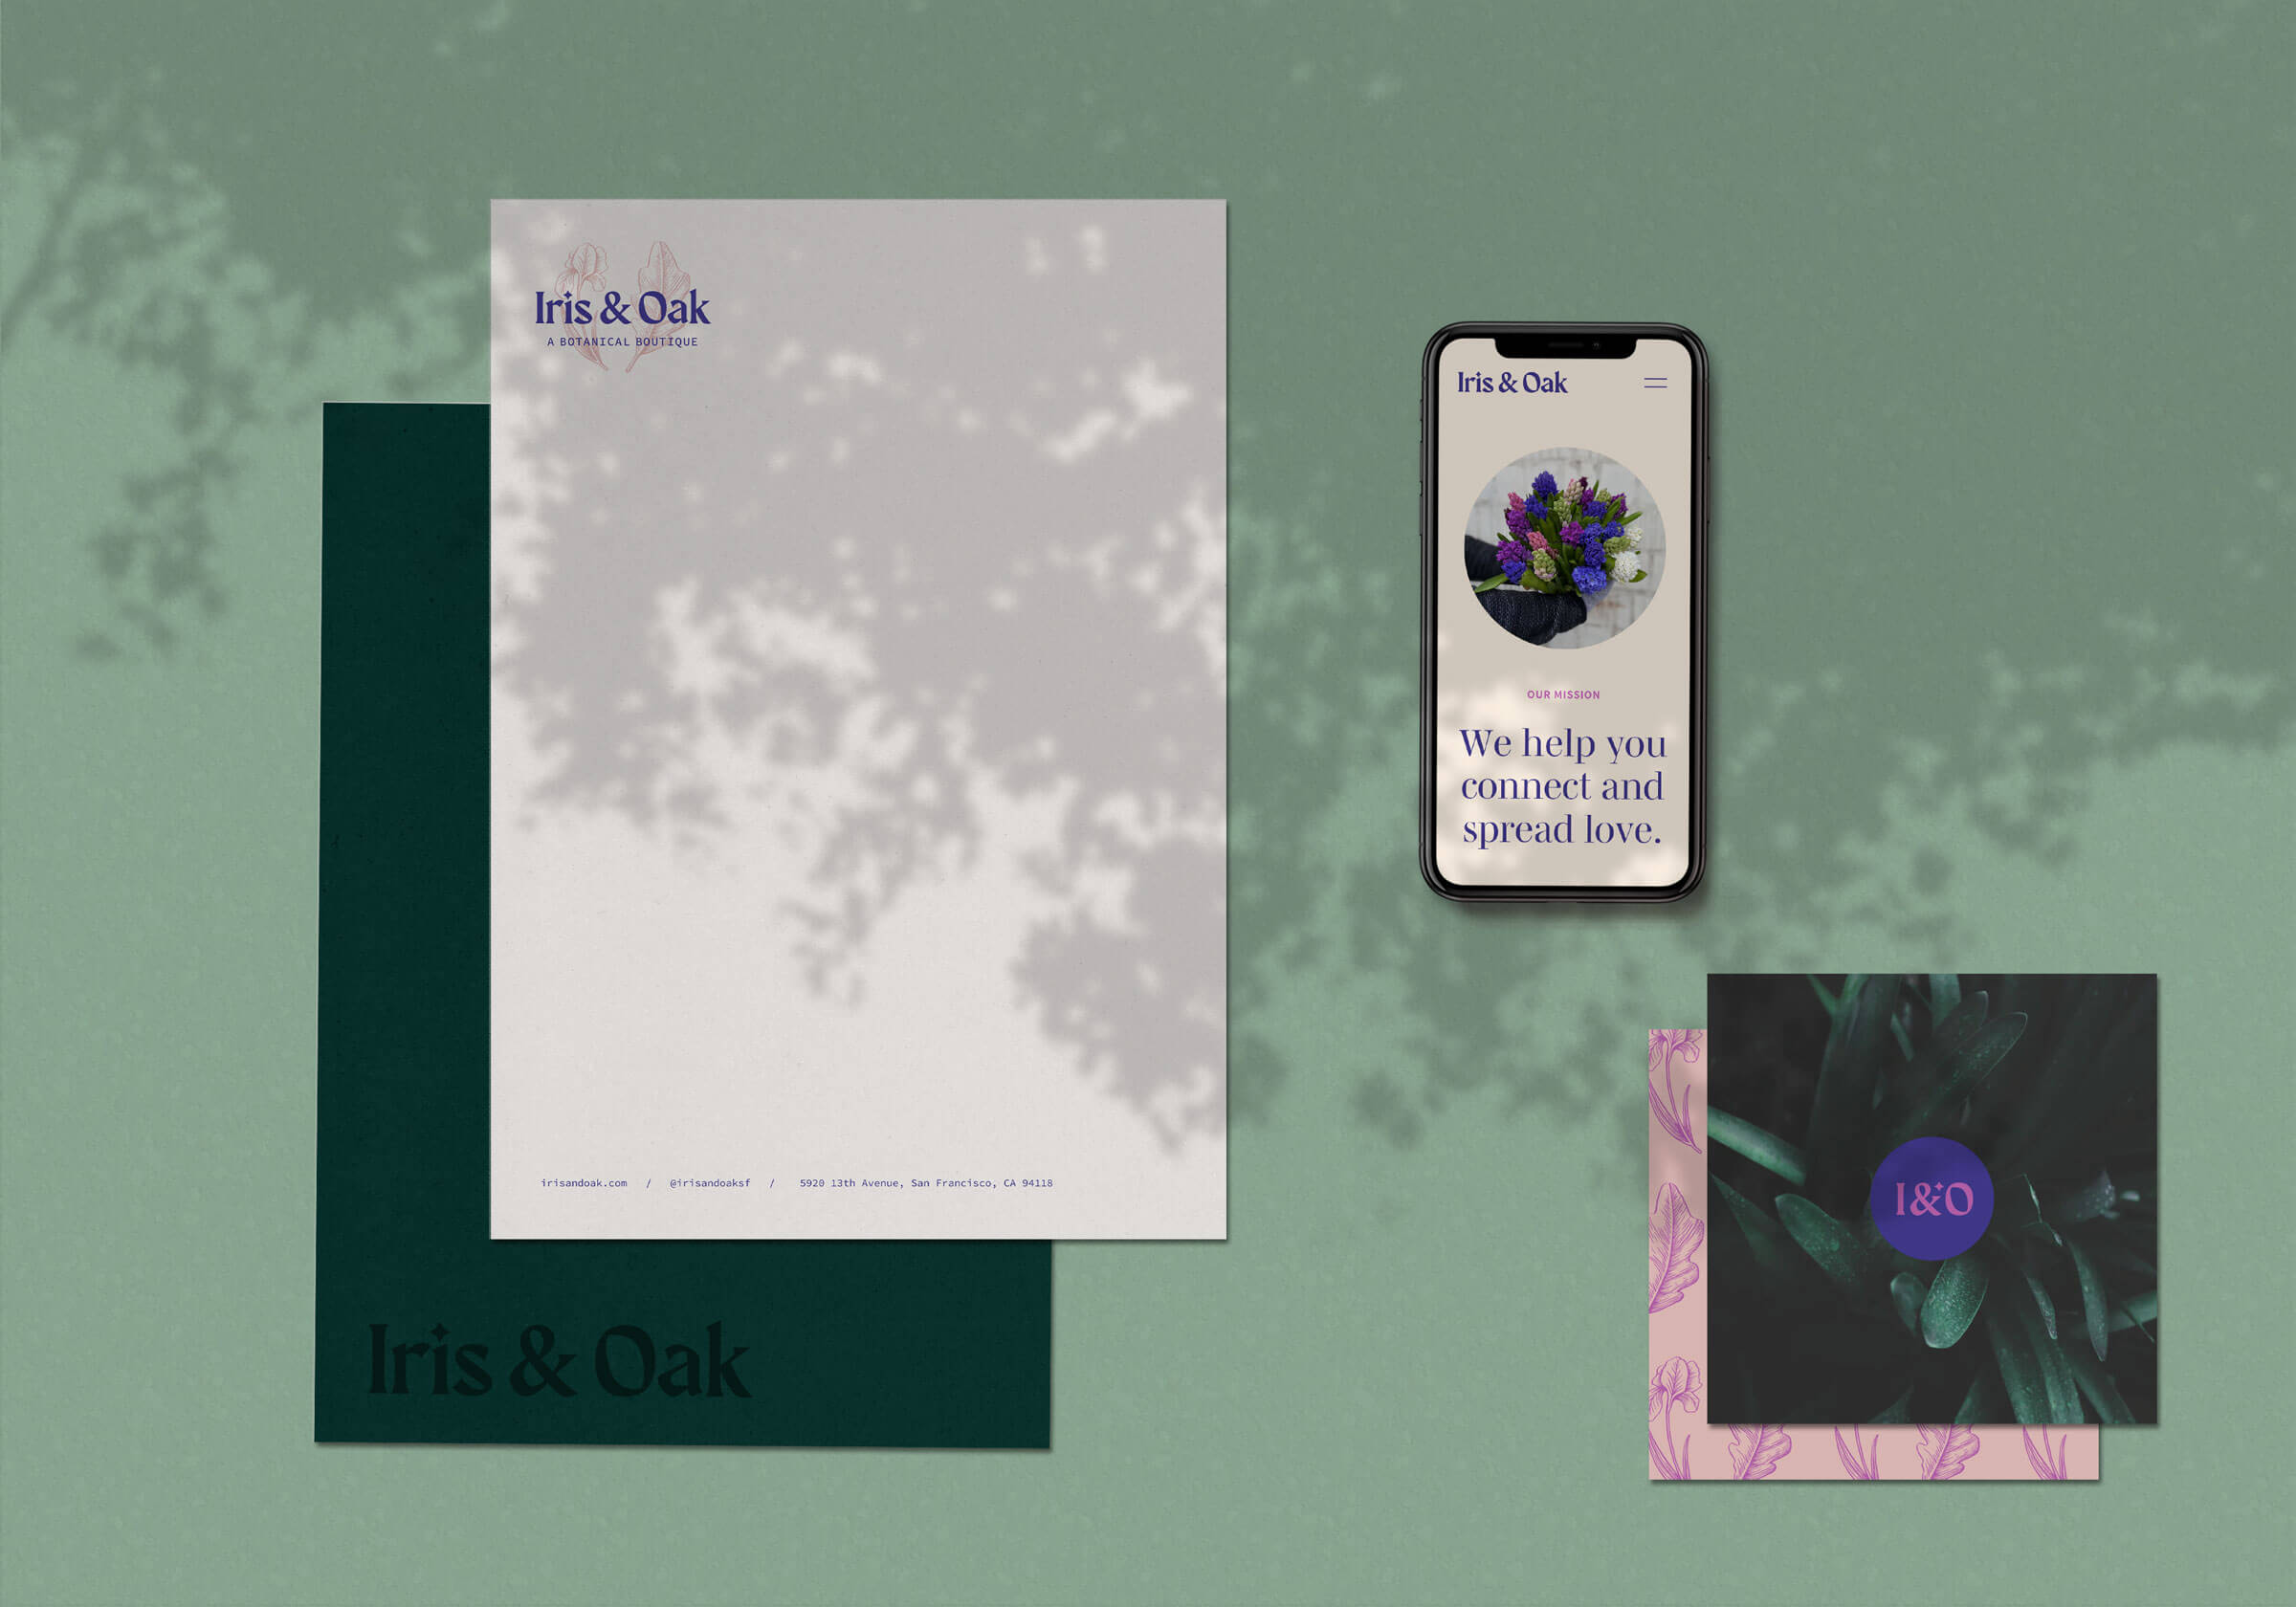 Iris & Oak stationery and mobile web design